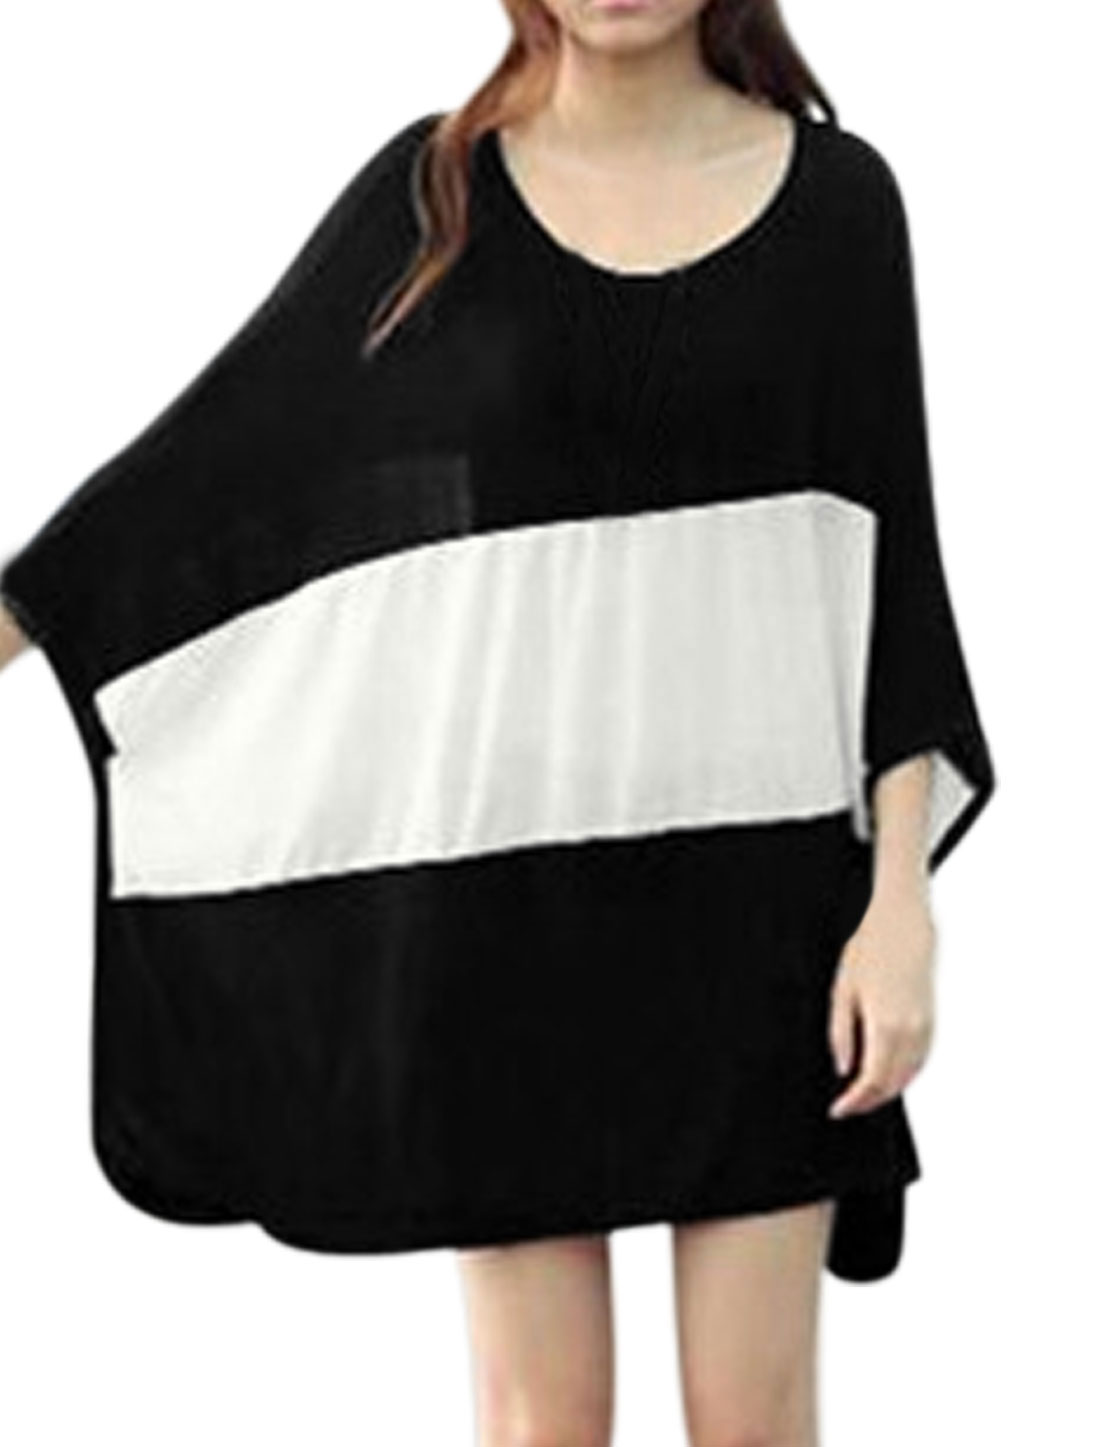 Women Long Batwing Sleeves Color Block Loose Fit Tunic Tops Black White L